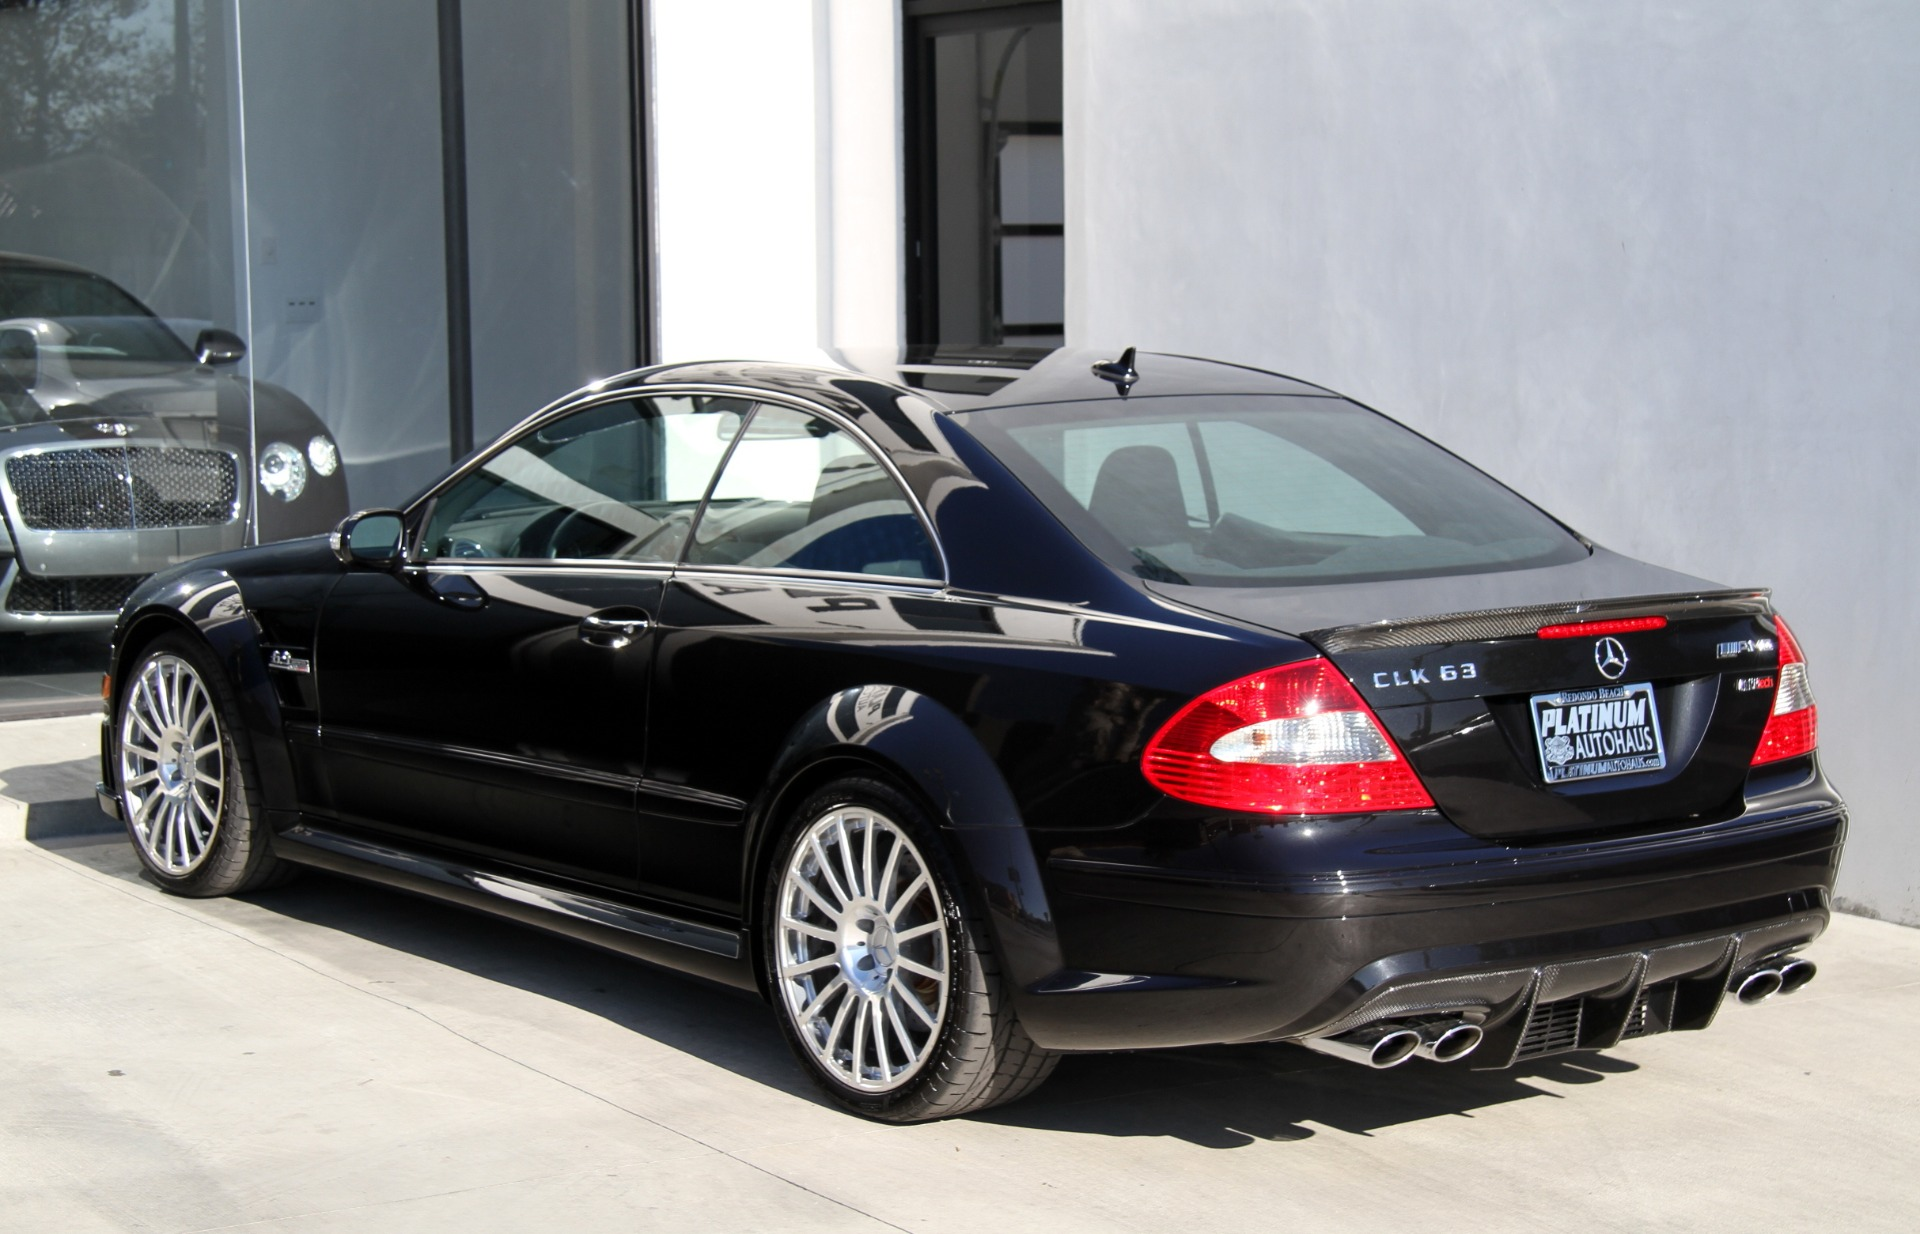 Free Vehicle History Report By Vin >> 2008 Mercedes-Benz CLK 63 AMG Black Series Stock # 6069 ...